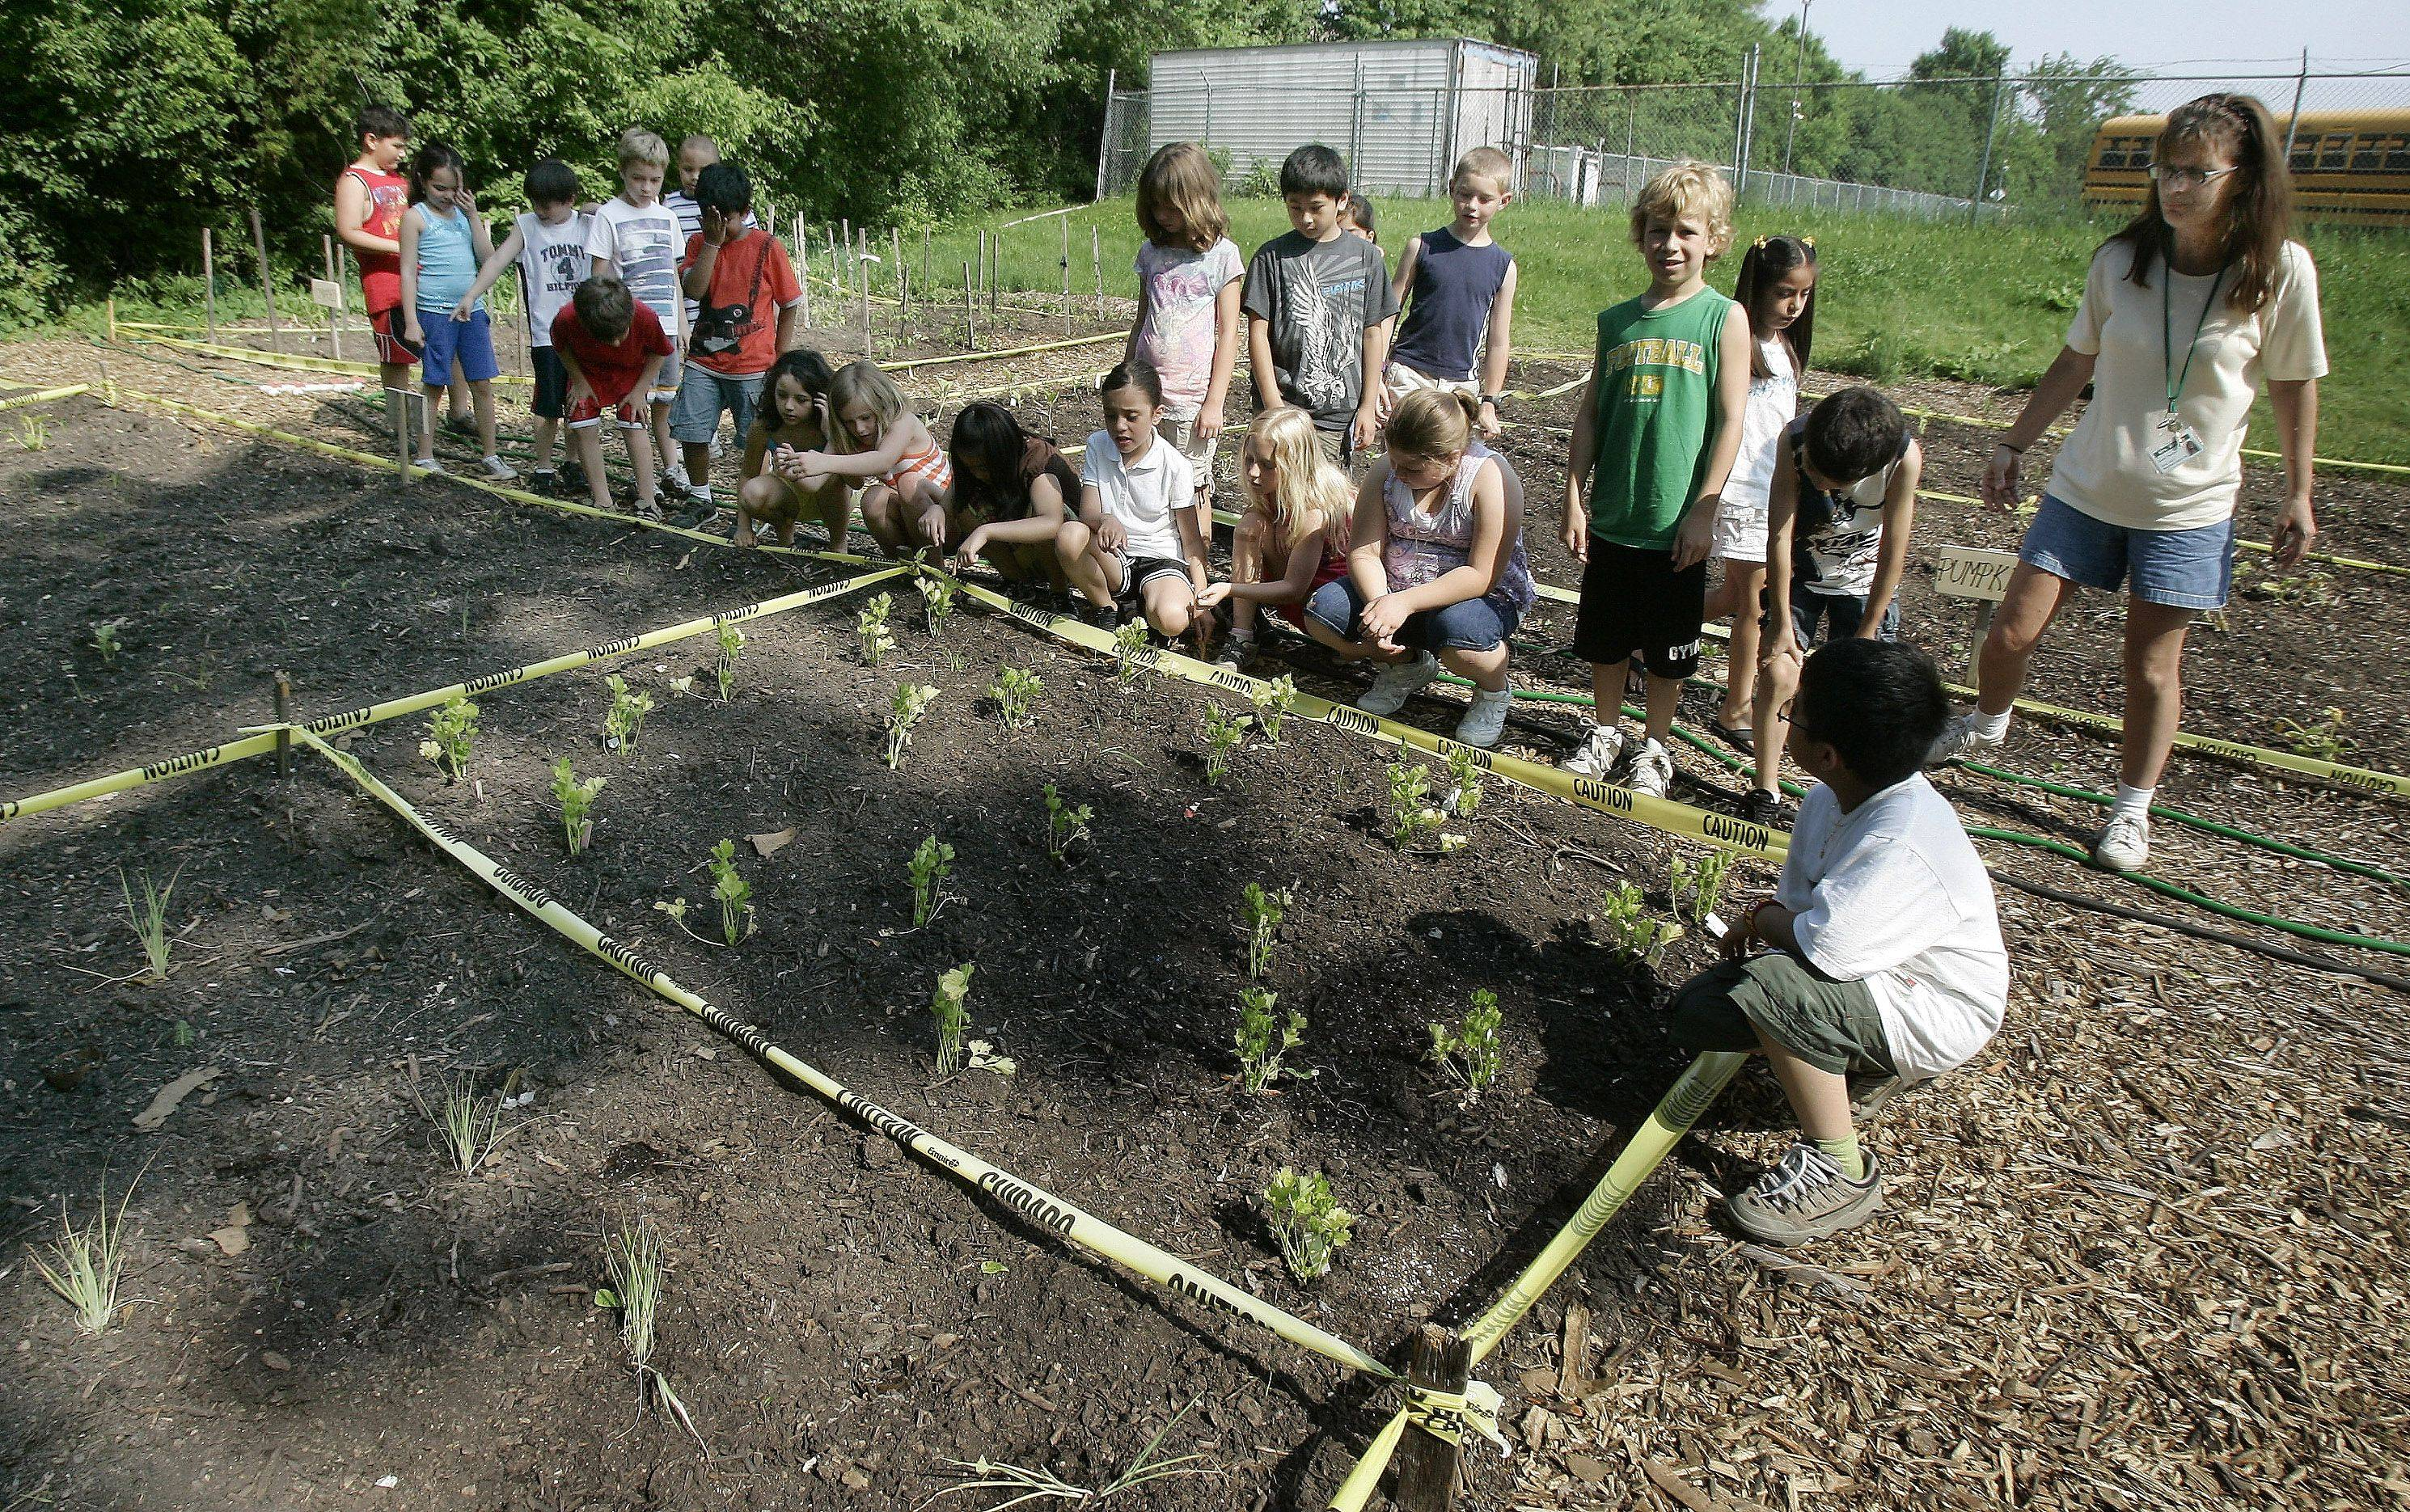 Students listen to substitute teacher Tracy Wrisley as she leads Brandy Cucci's second-grade class around the Harvest Garden at Woodland Elementary School West in Gages Lake.